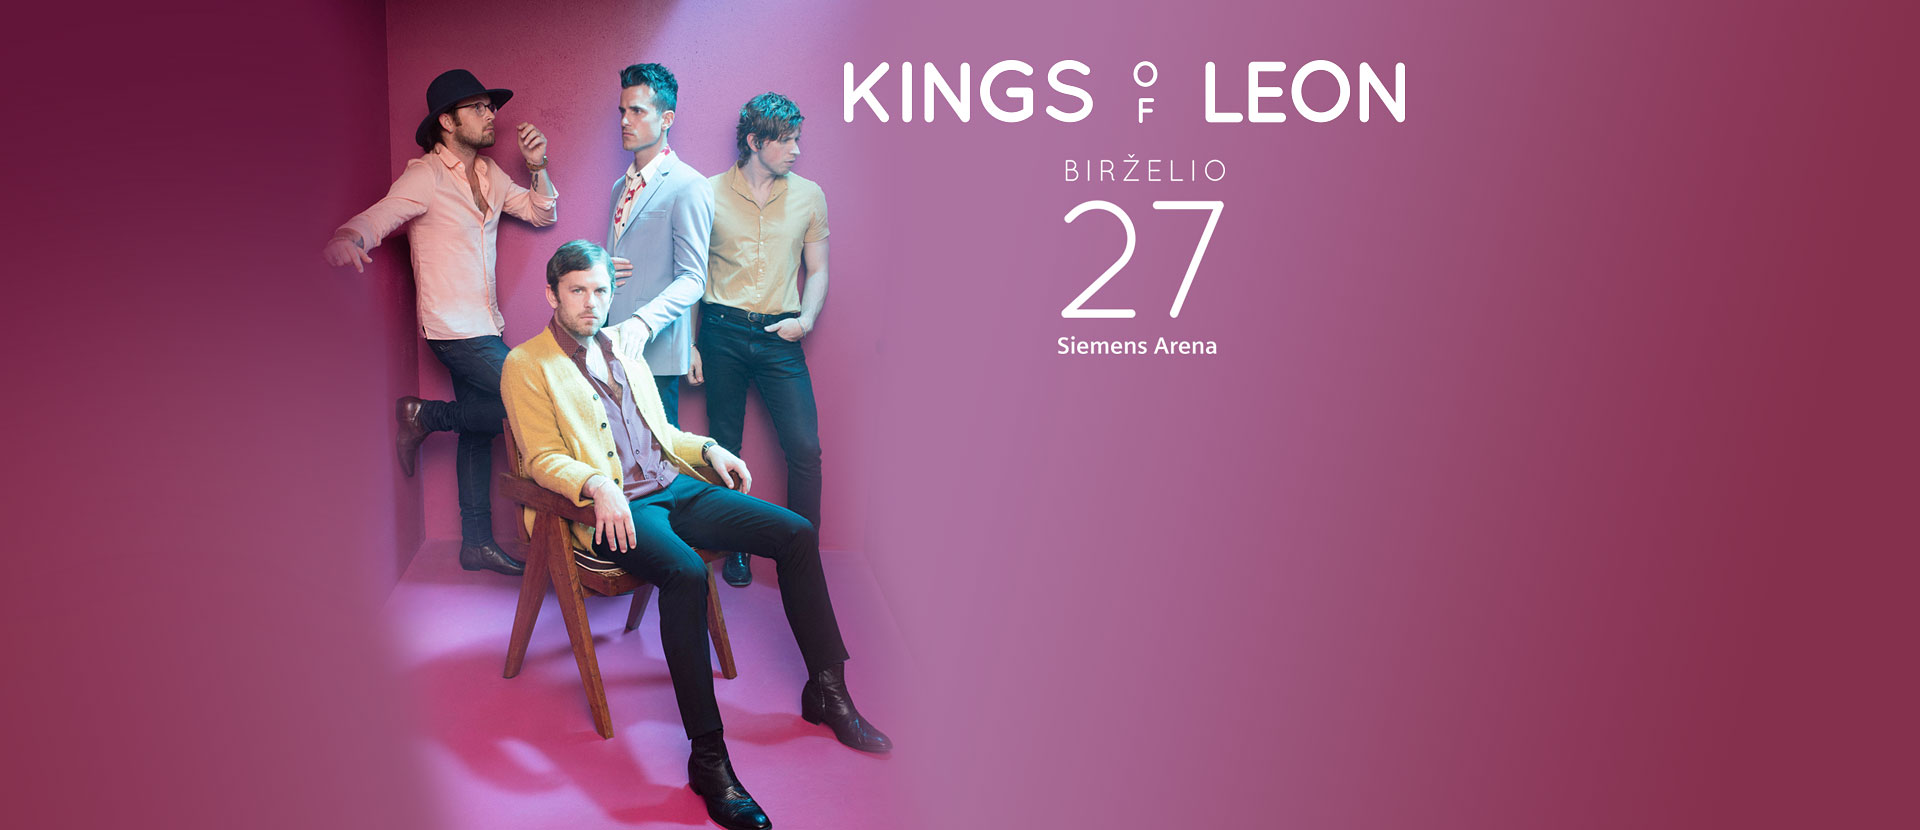 KINGS OF LEON - WALLS tour